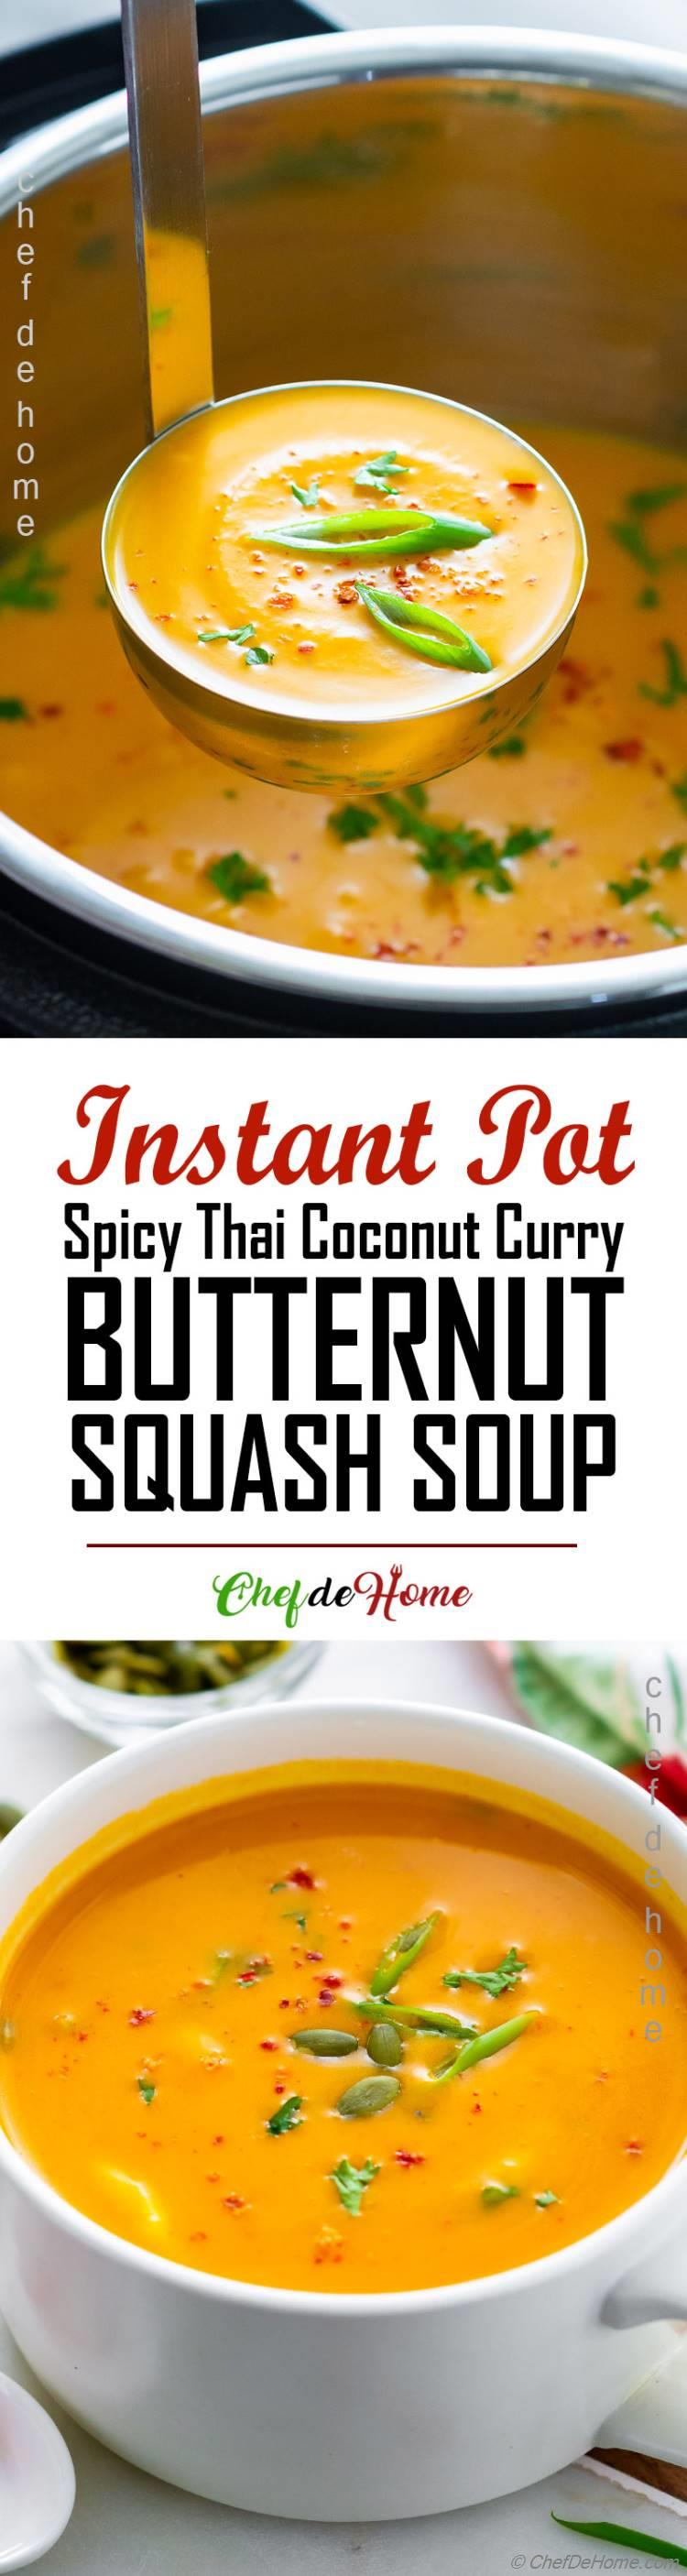 Spicy Butternut Squash Coconut Curry Soup Recipe - Long Picture